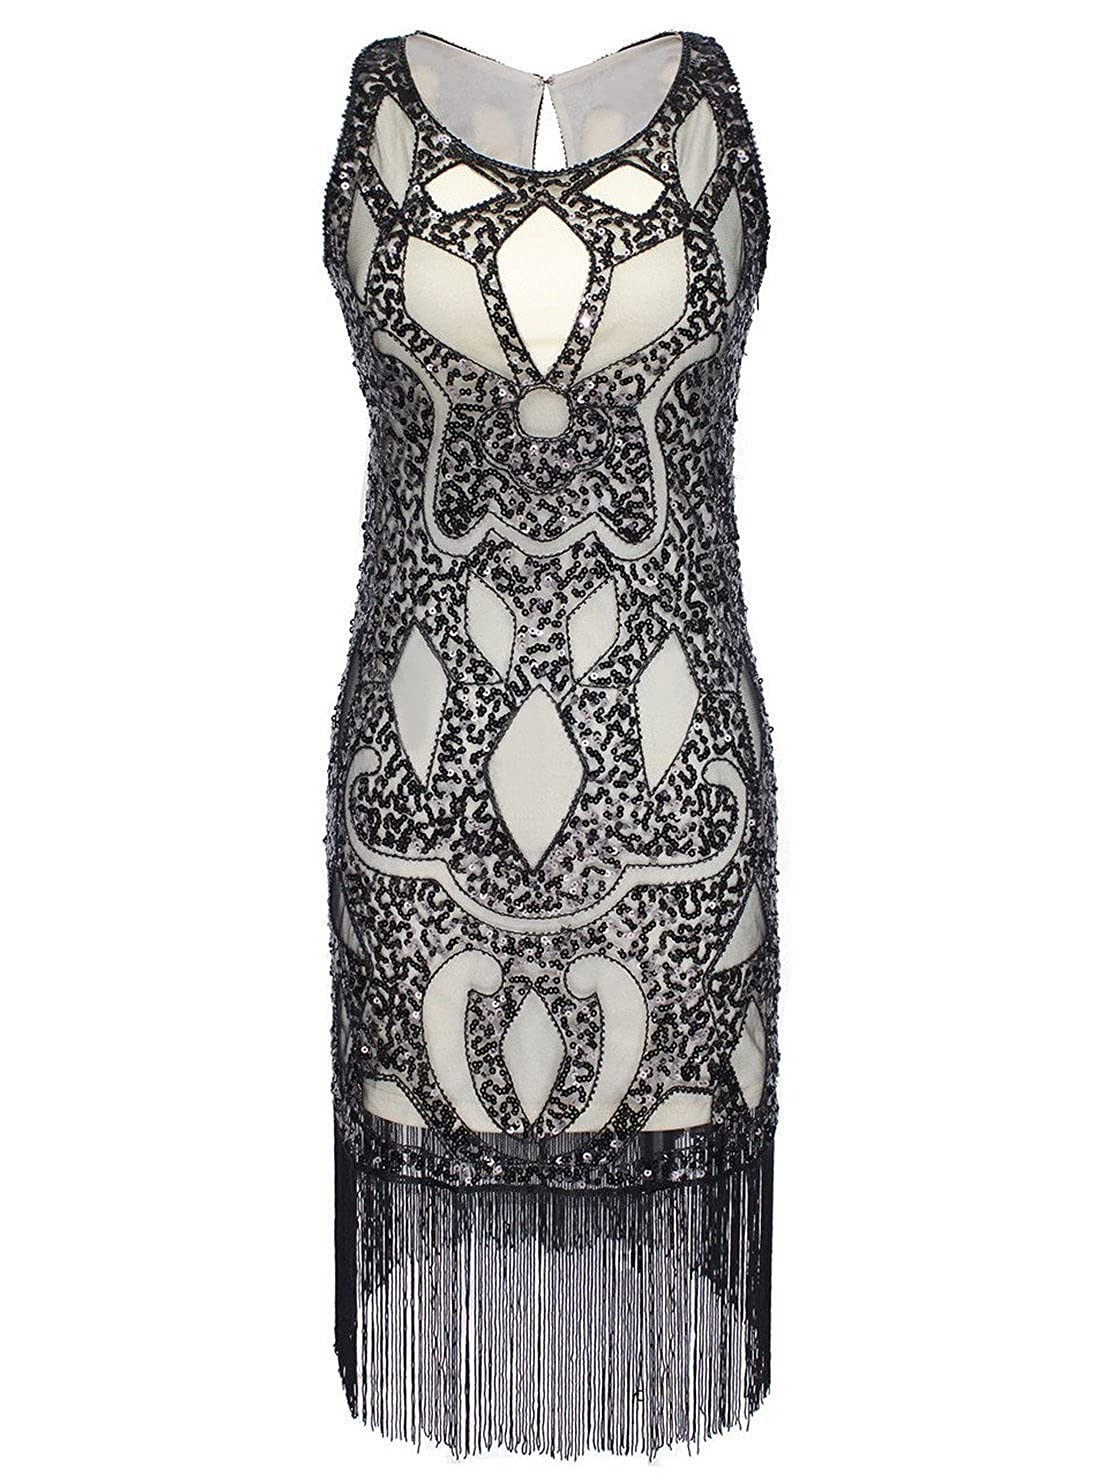 26225bb7 Evening,party,wedding cocktail dress ,Vintage 1920s style gatsby costume  dress. Both front and back are decorated with sequined paisley pattern